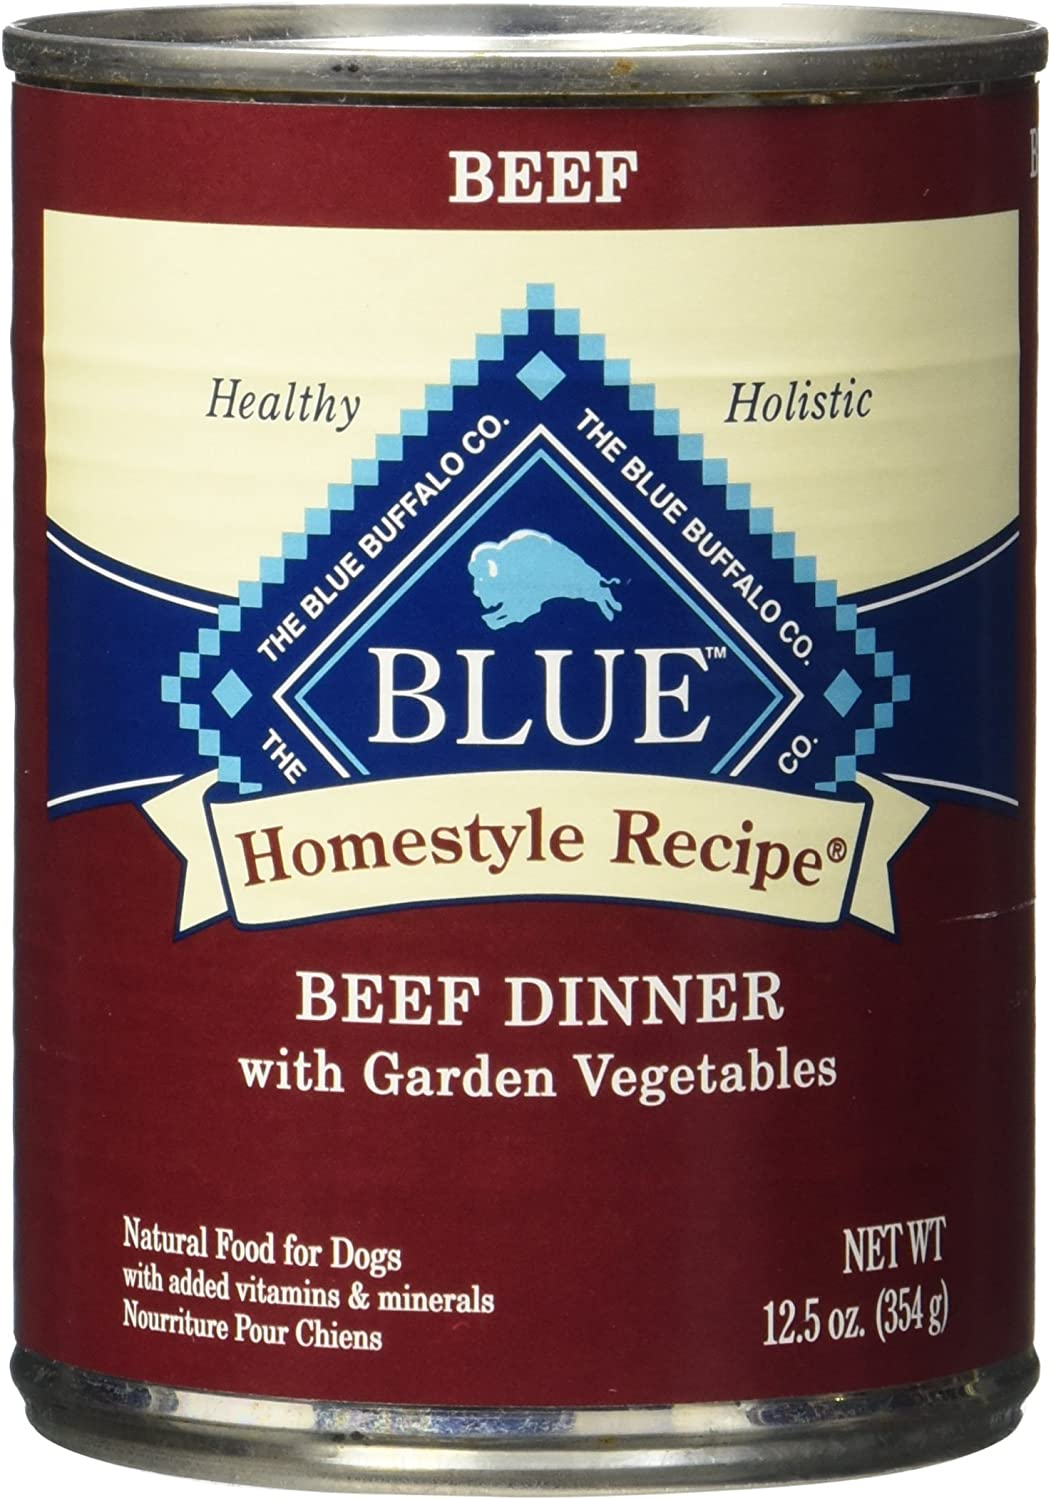 Blue Buffalo Homestyle Recipe Beef Dinner Canned Dog Food, Large, Pack Of 12